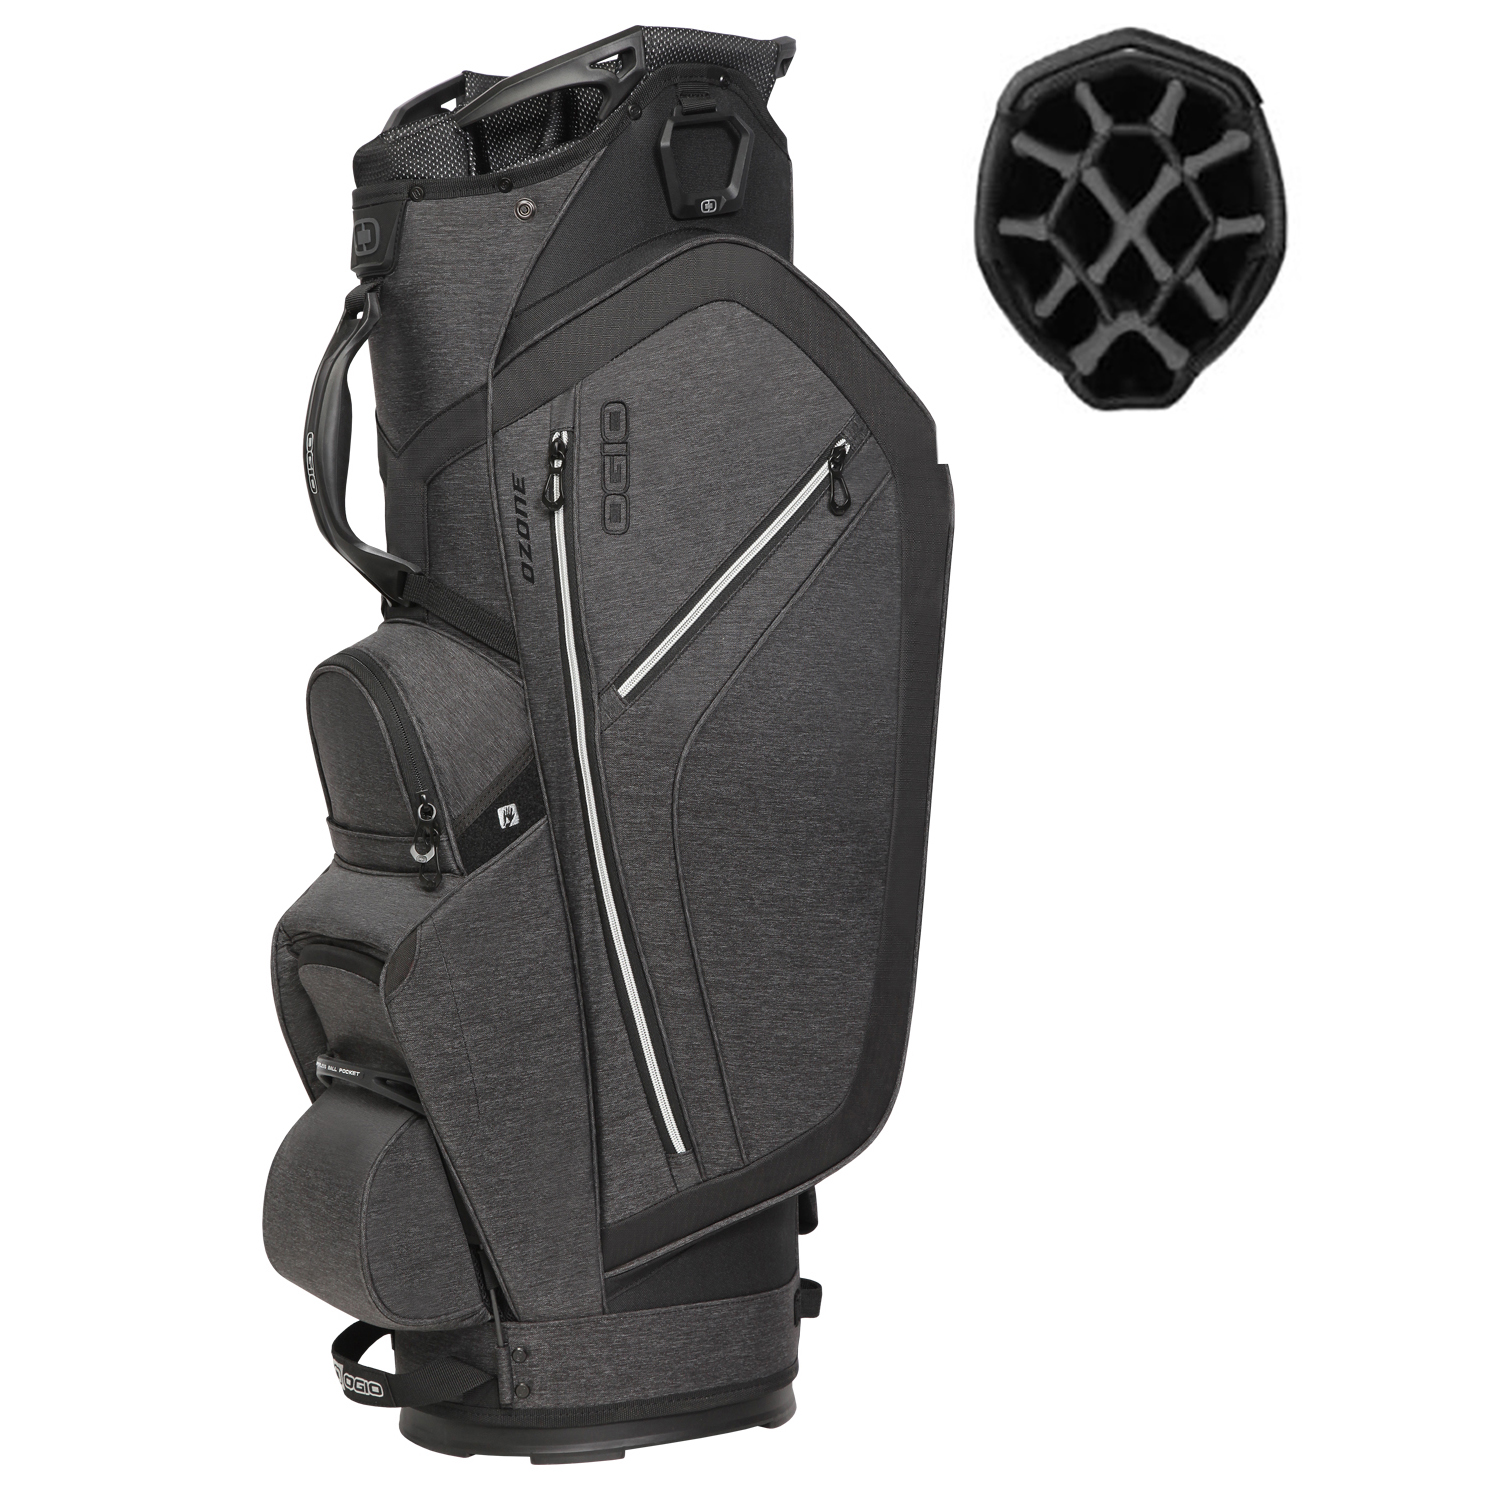 OGIO Ozone 14 Way Diamond Top 6 Pocket/Cooler Pocket Golf Cart Bag, Dark Static